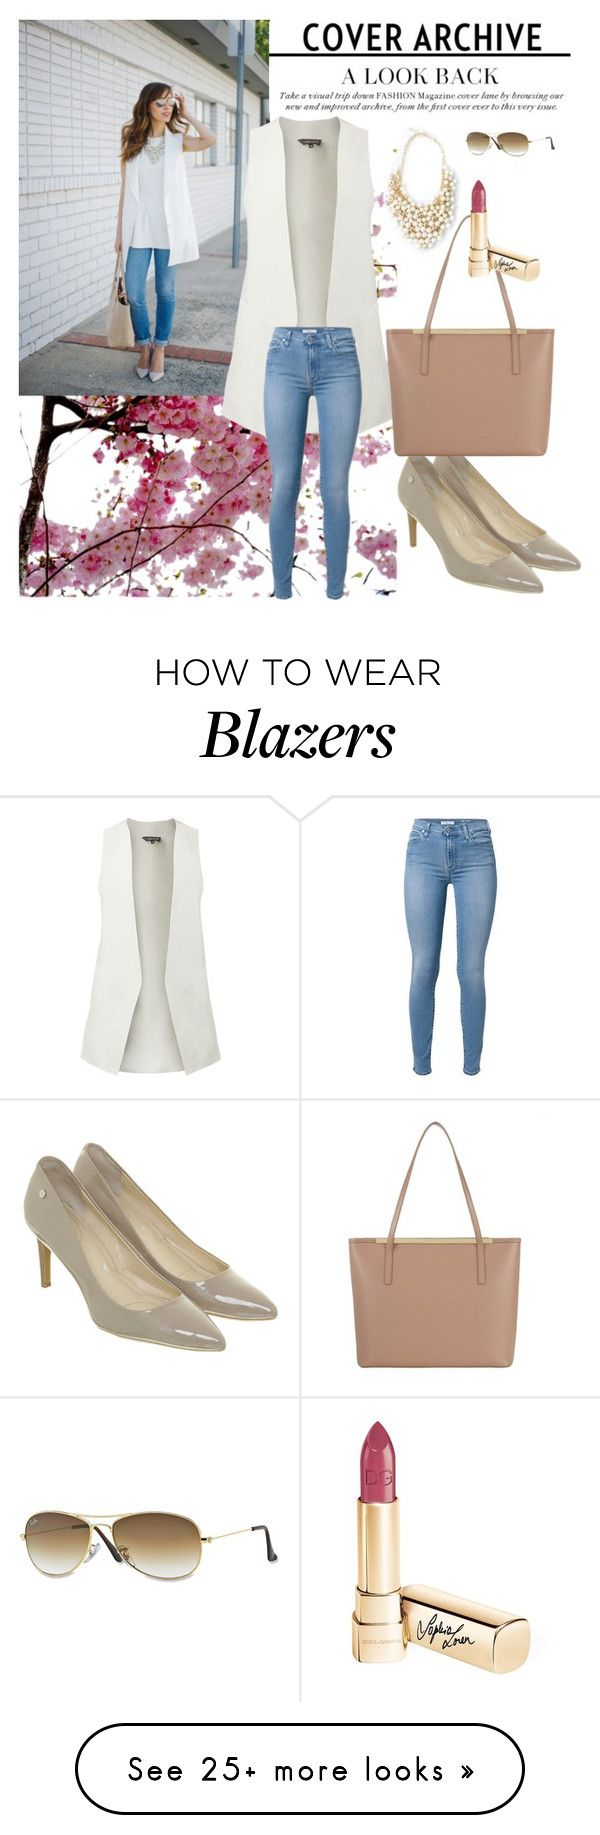 """""""Blazer Outfits"""" by janeng-167 on Polyvore featuring Calvin Klein, Ted Baker, Ray-Ban and Dolce&Gabbana"""